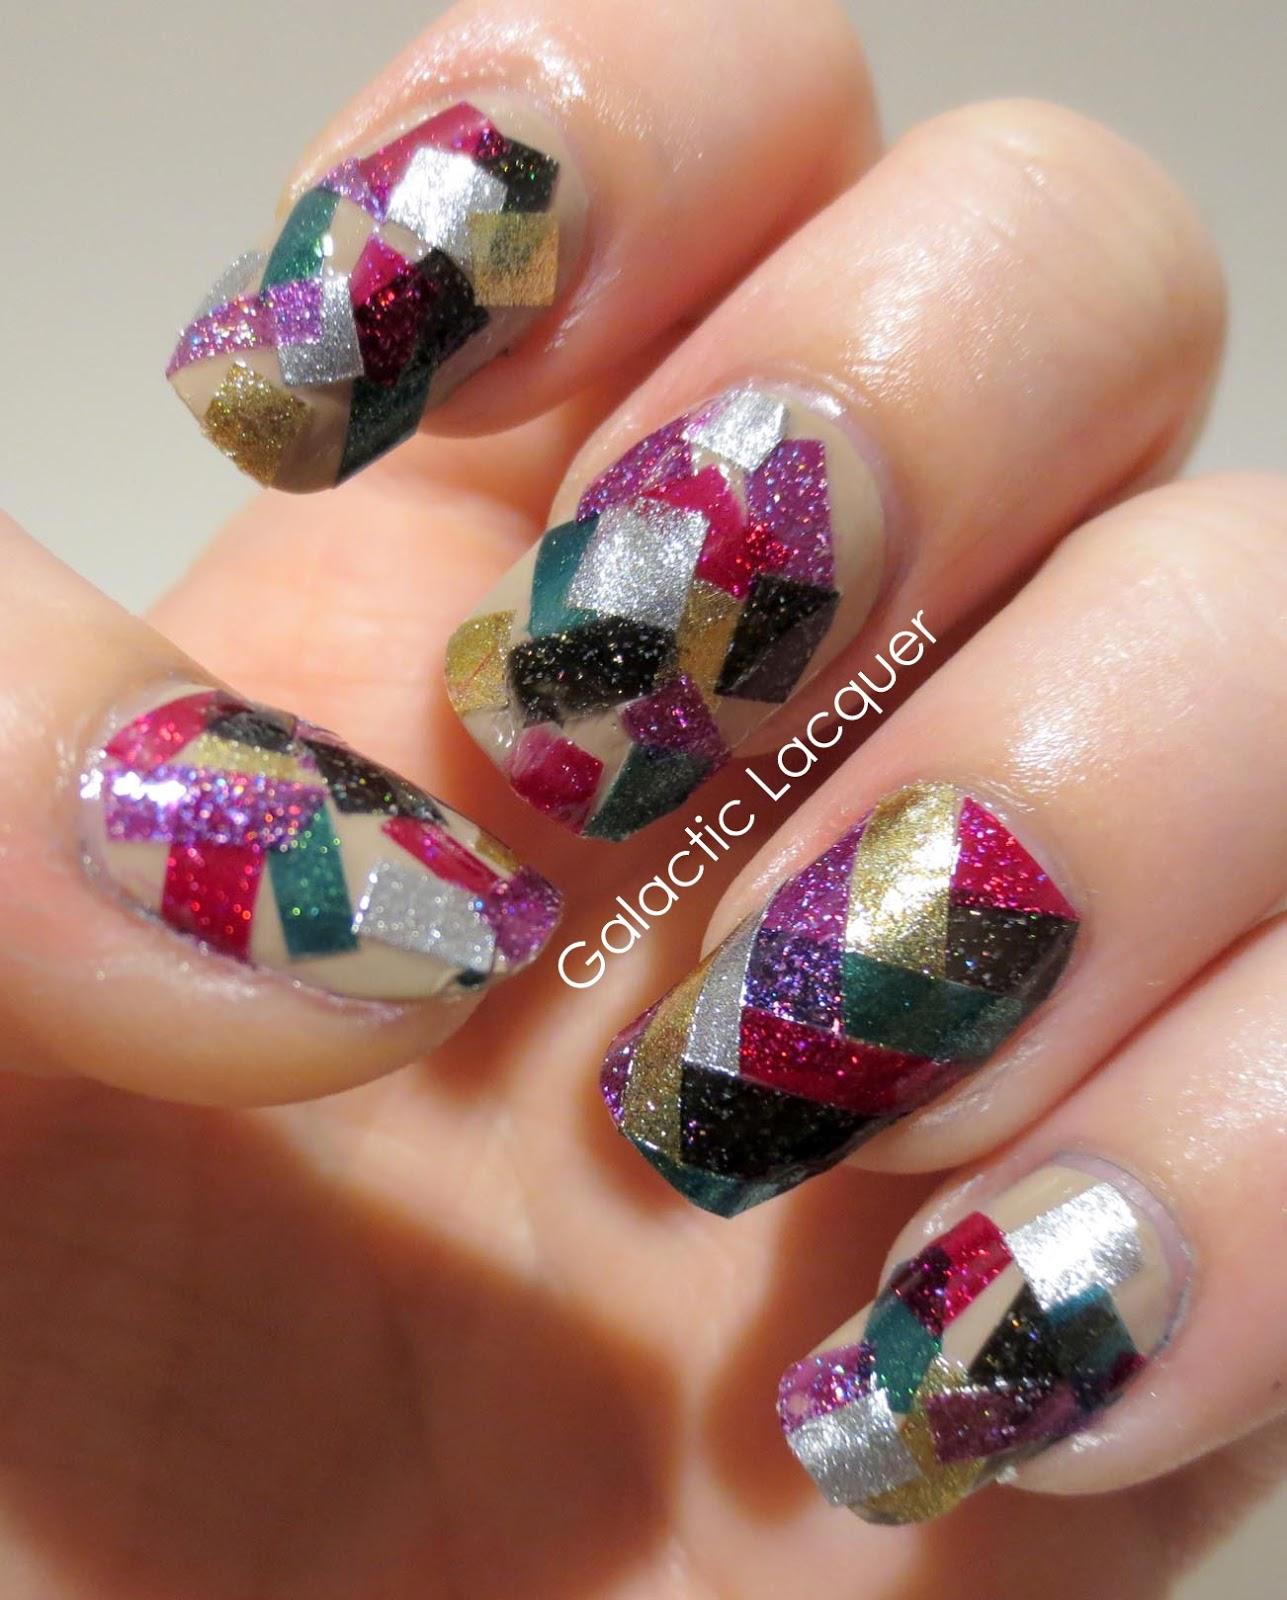 Galactic Lacquer: Painting in the New Year - Confetti